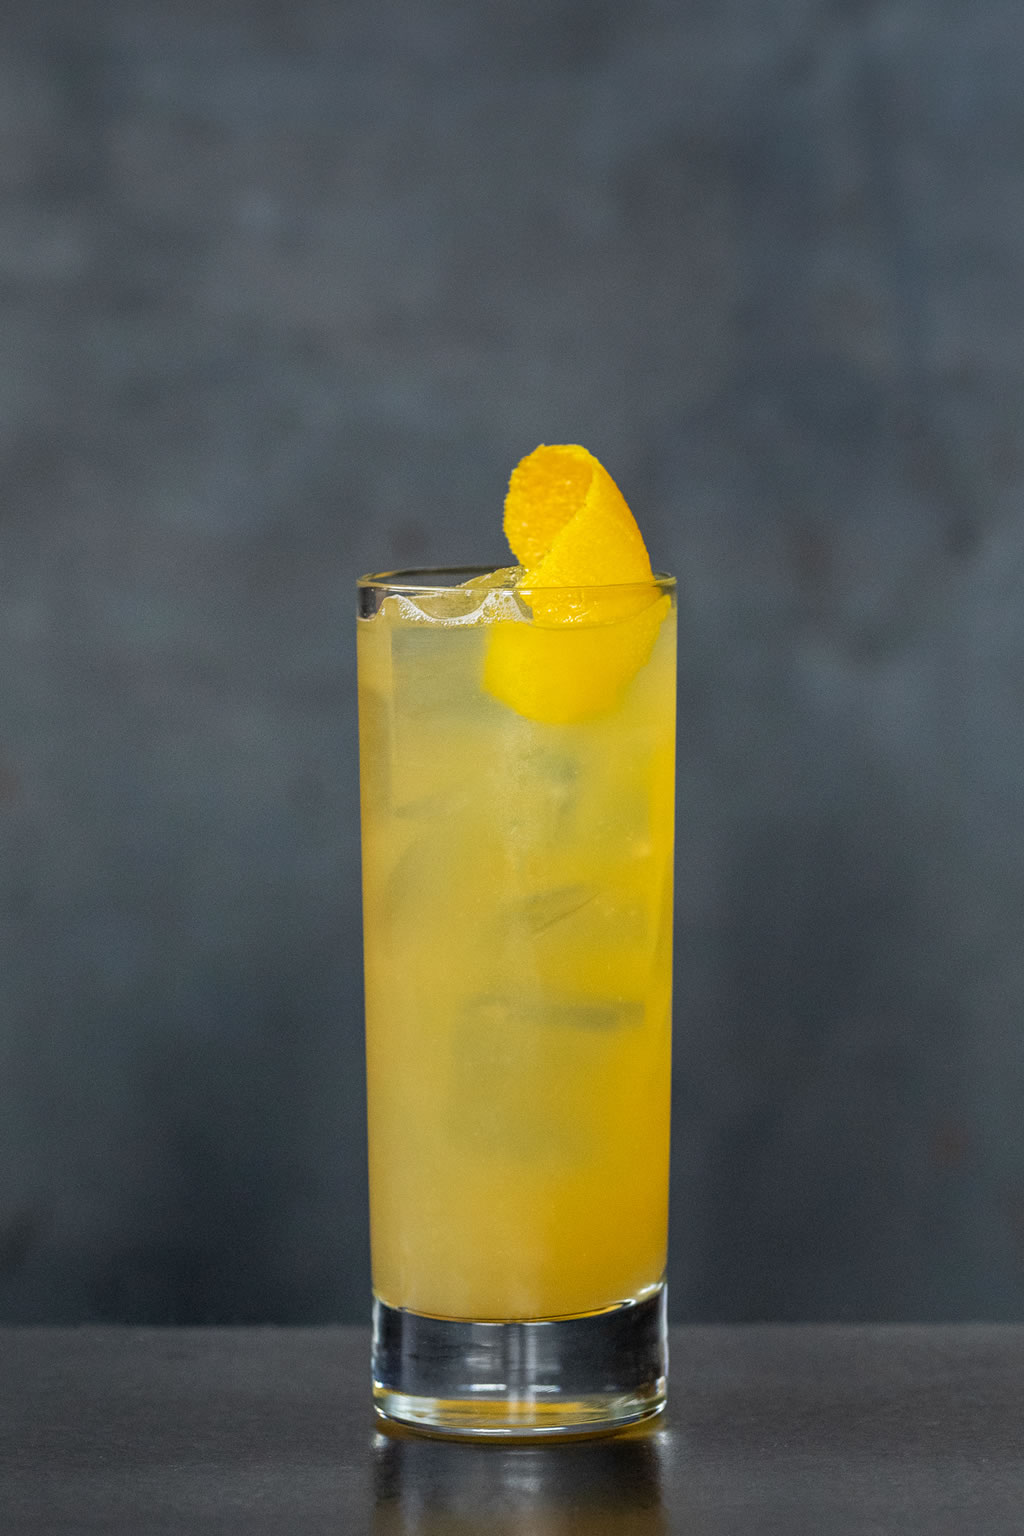 09-2019_OTOTO_Cocktail_Final Images_Web-Res_04